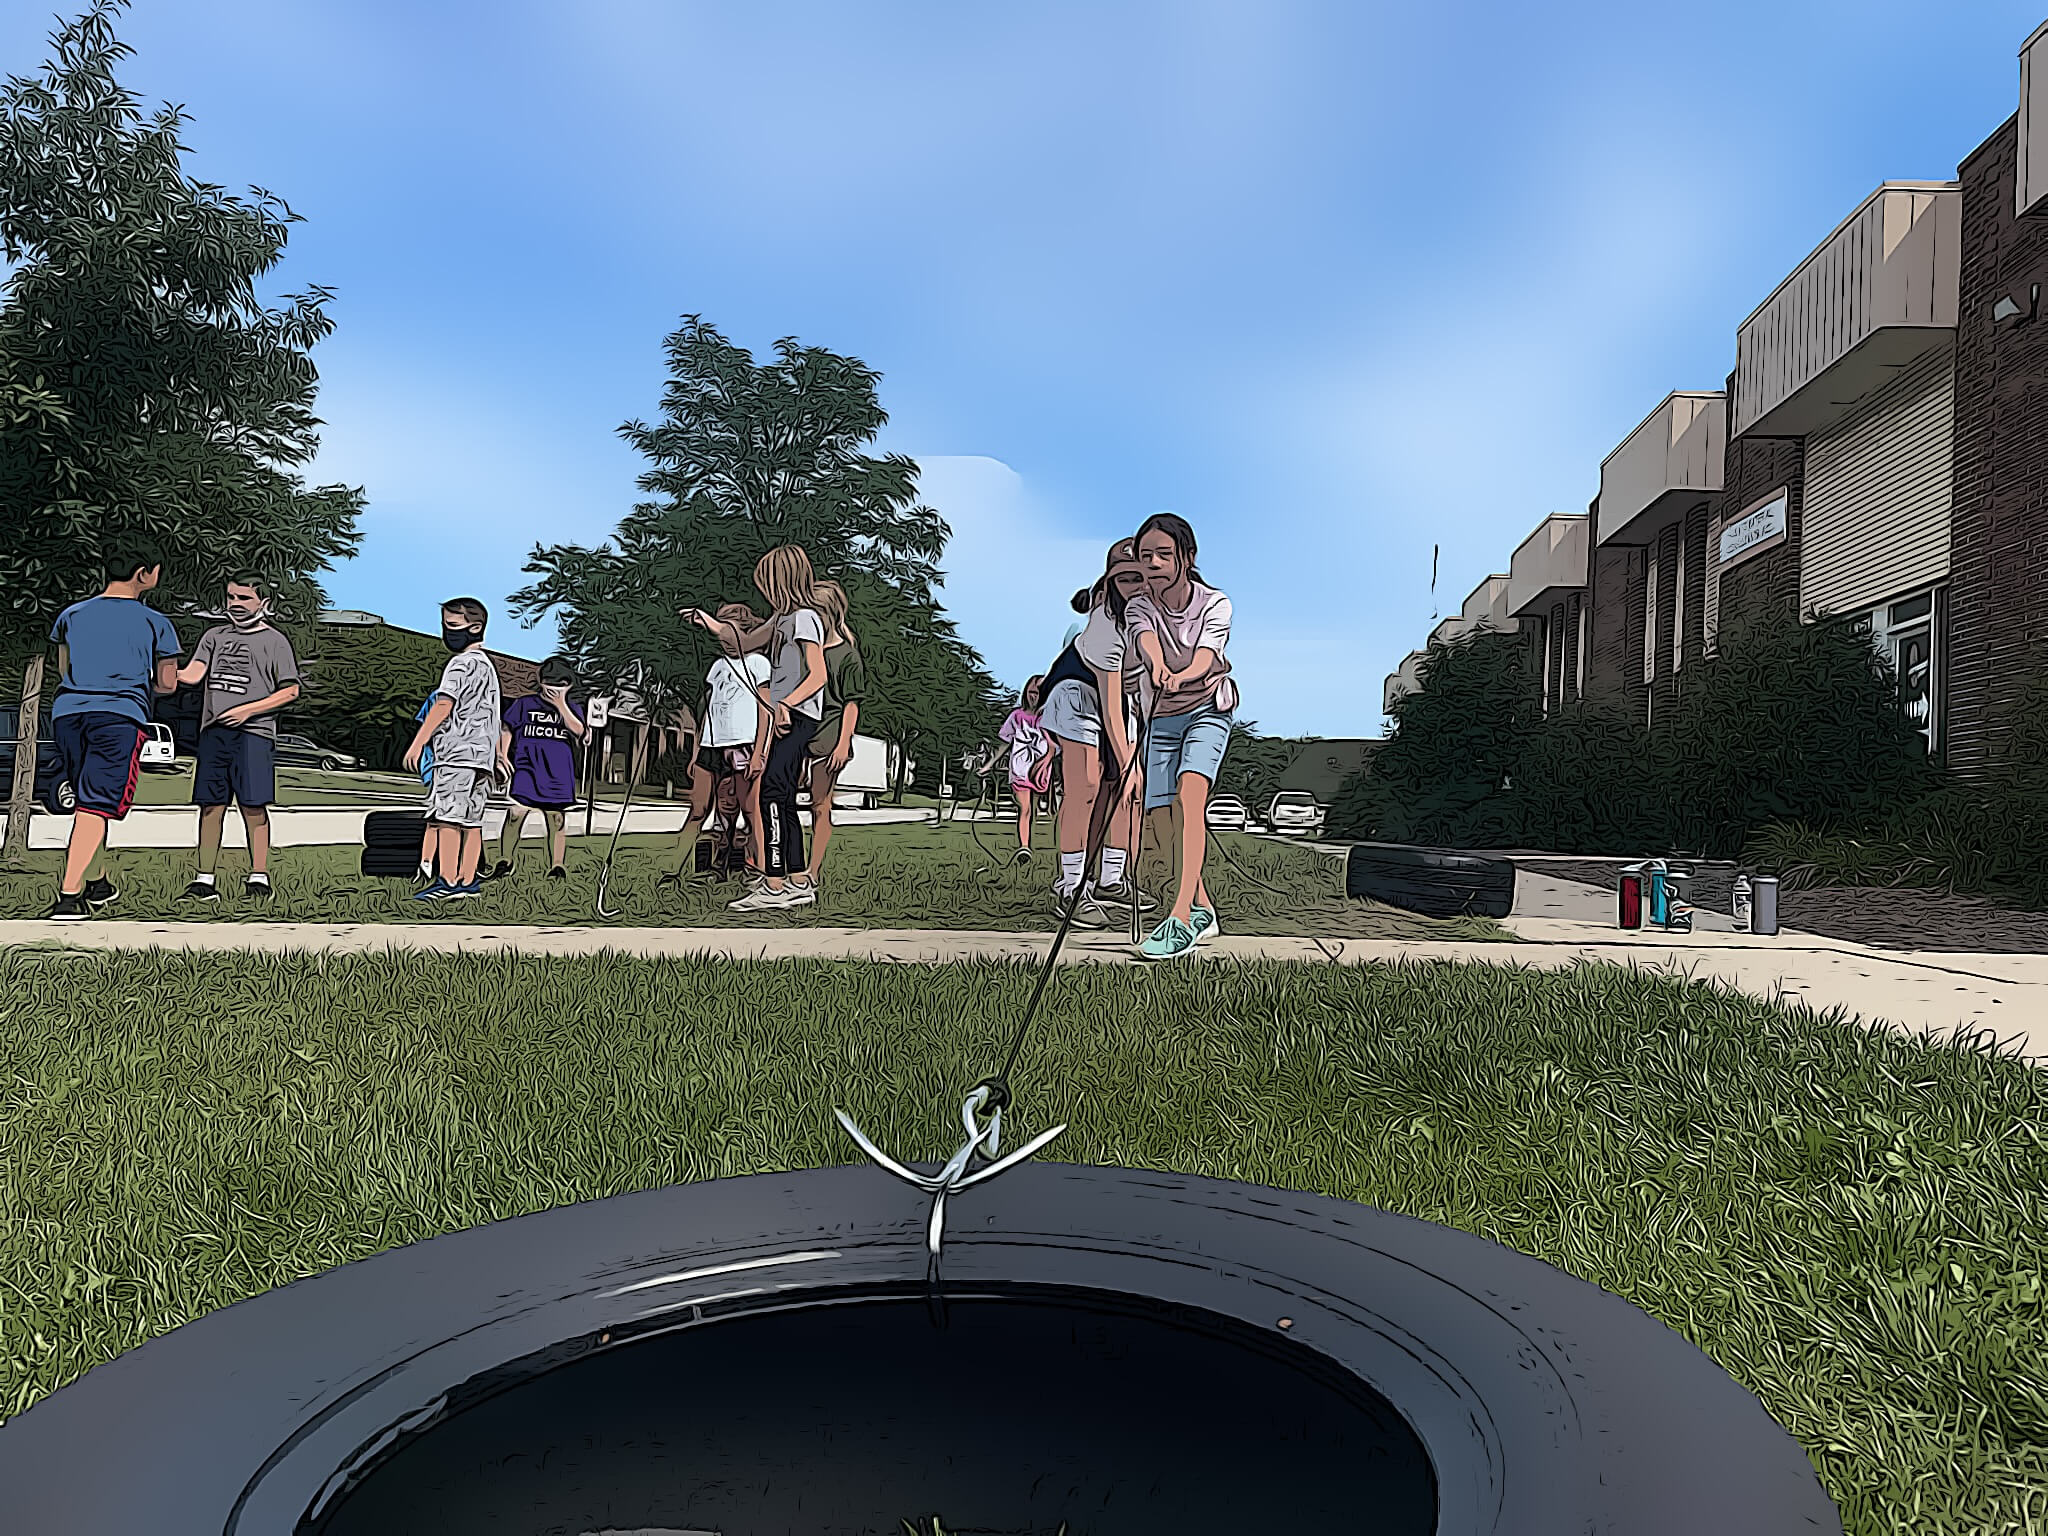 exercise to pull the tire on the grass